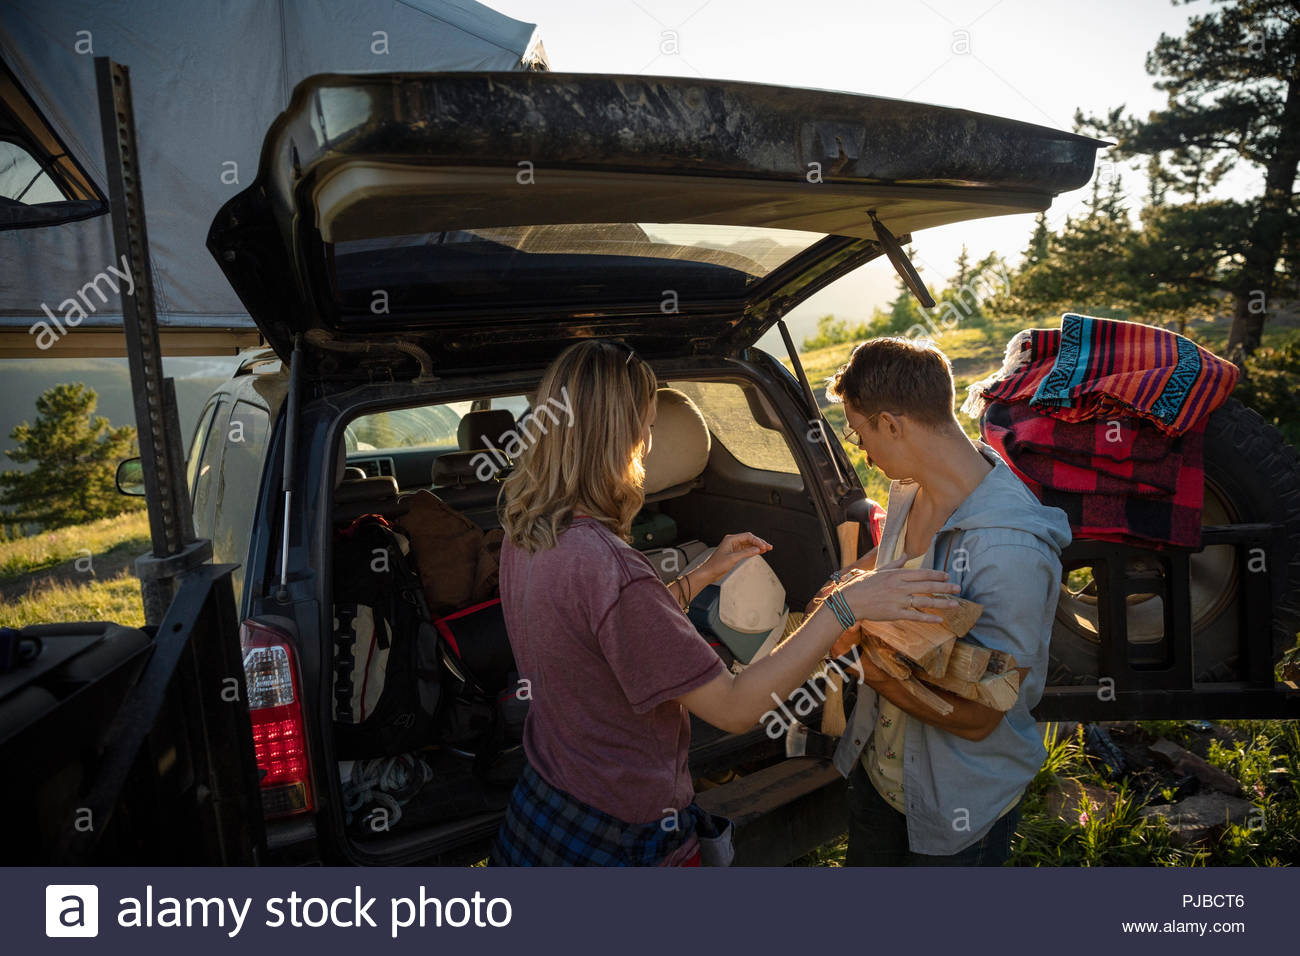 Couple camping, unloading SUV - Stock Image